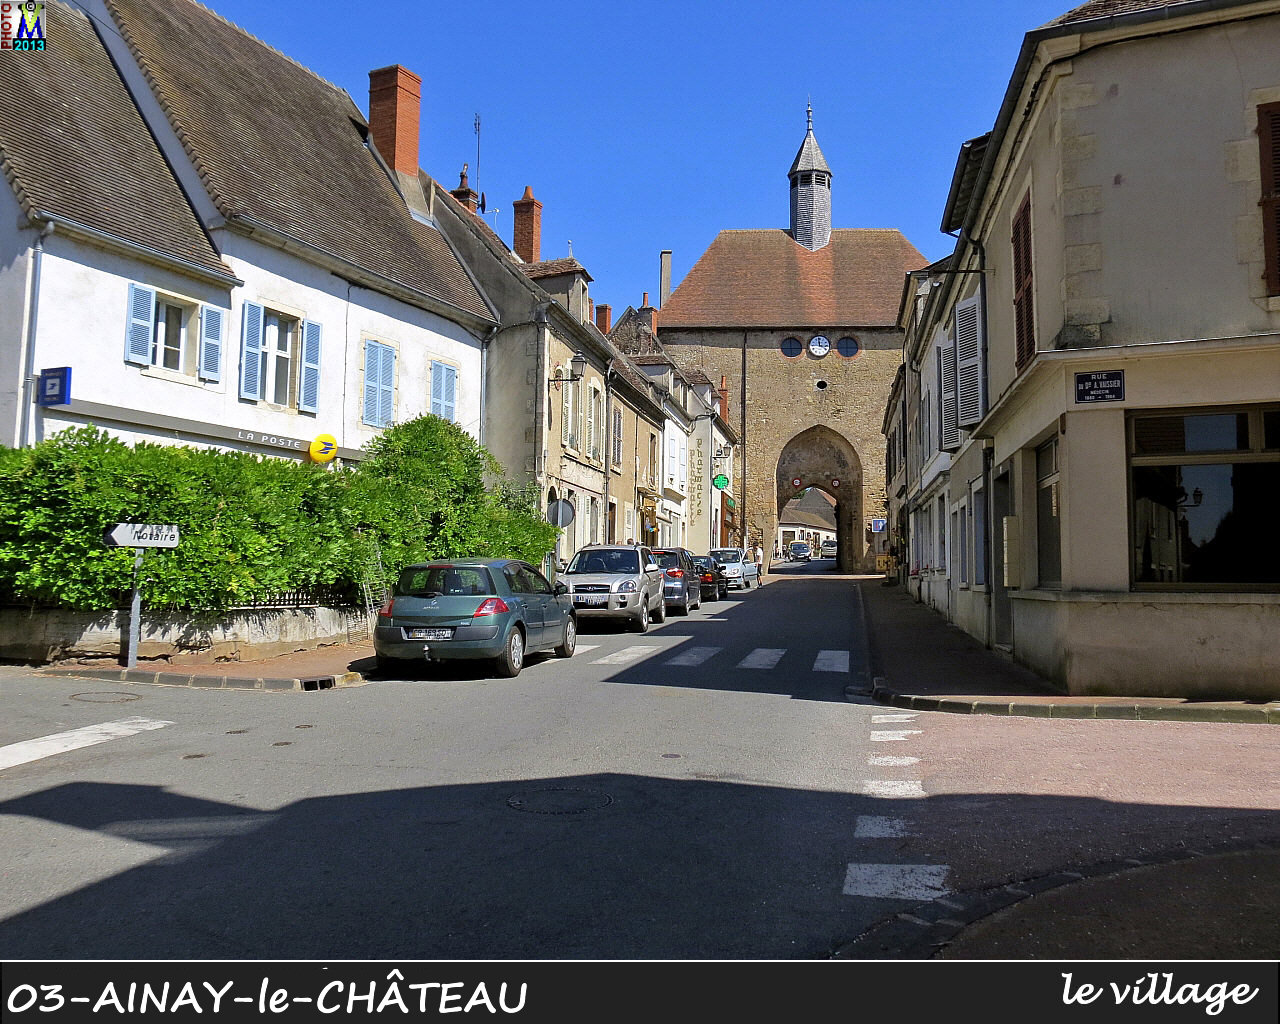 03AINAY-CHATEAU_village_100.jpg